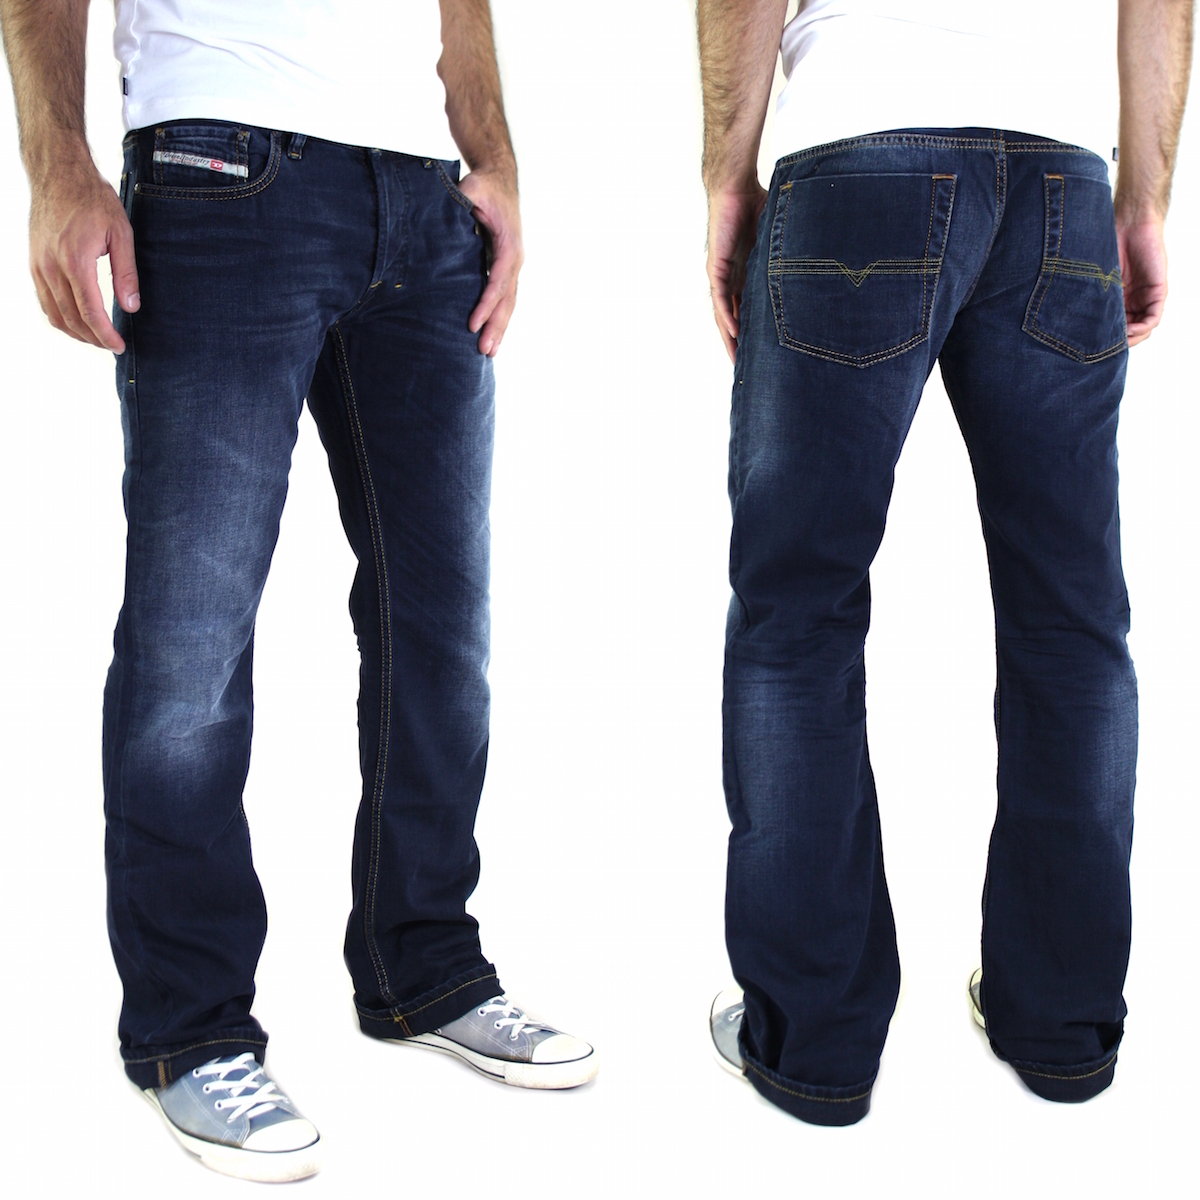 neu diesel zatiny herren jeans hose boot cut dunkelblau kollektion 2015 ebay. Black Bedroom Furniture Sets. Home Design Ideas